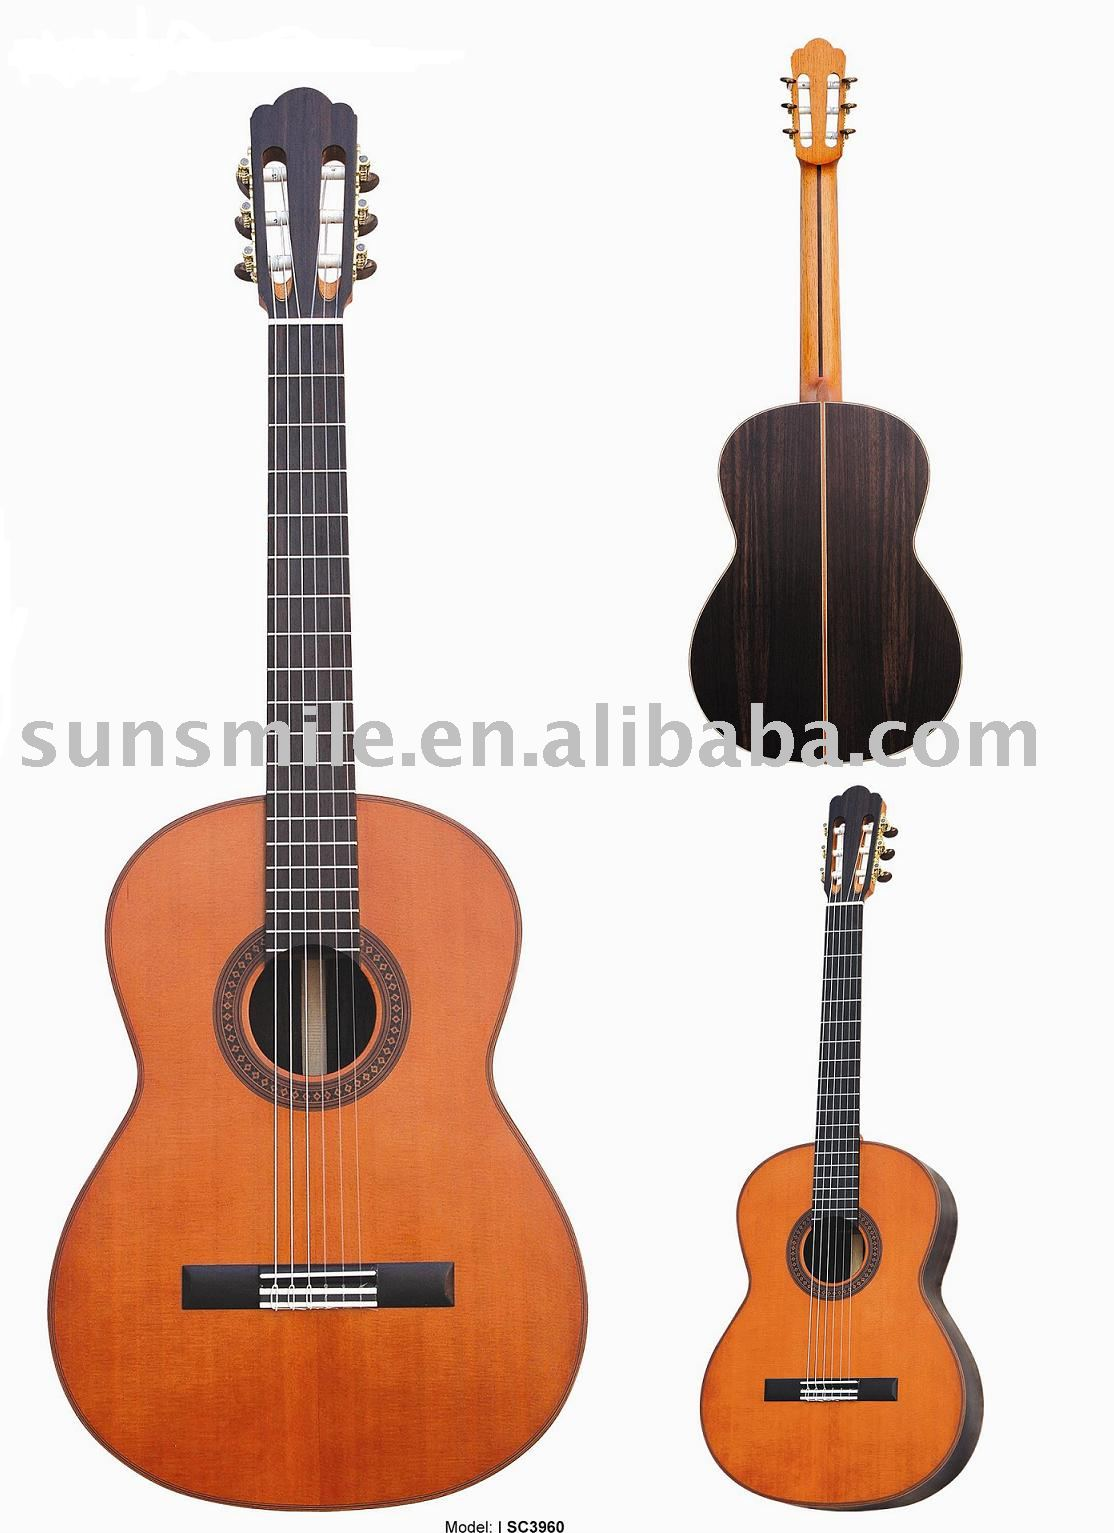 39 inch Solid Wood Top Classical Guitar SC3960